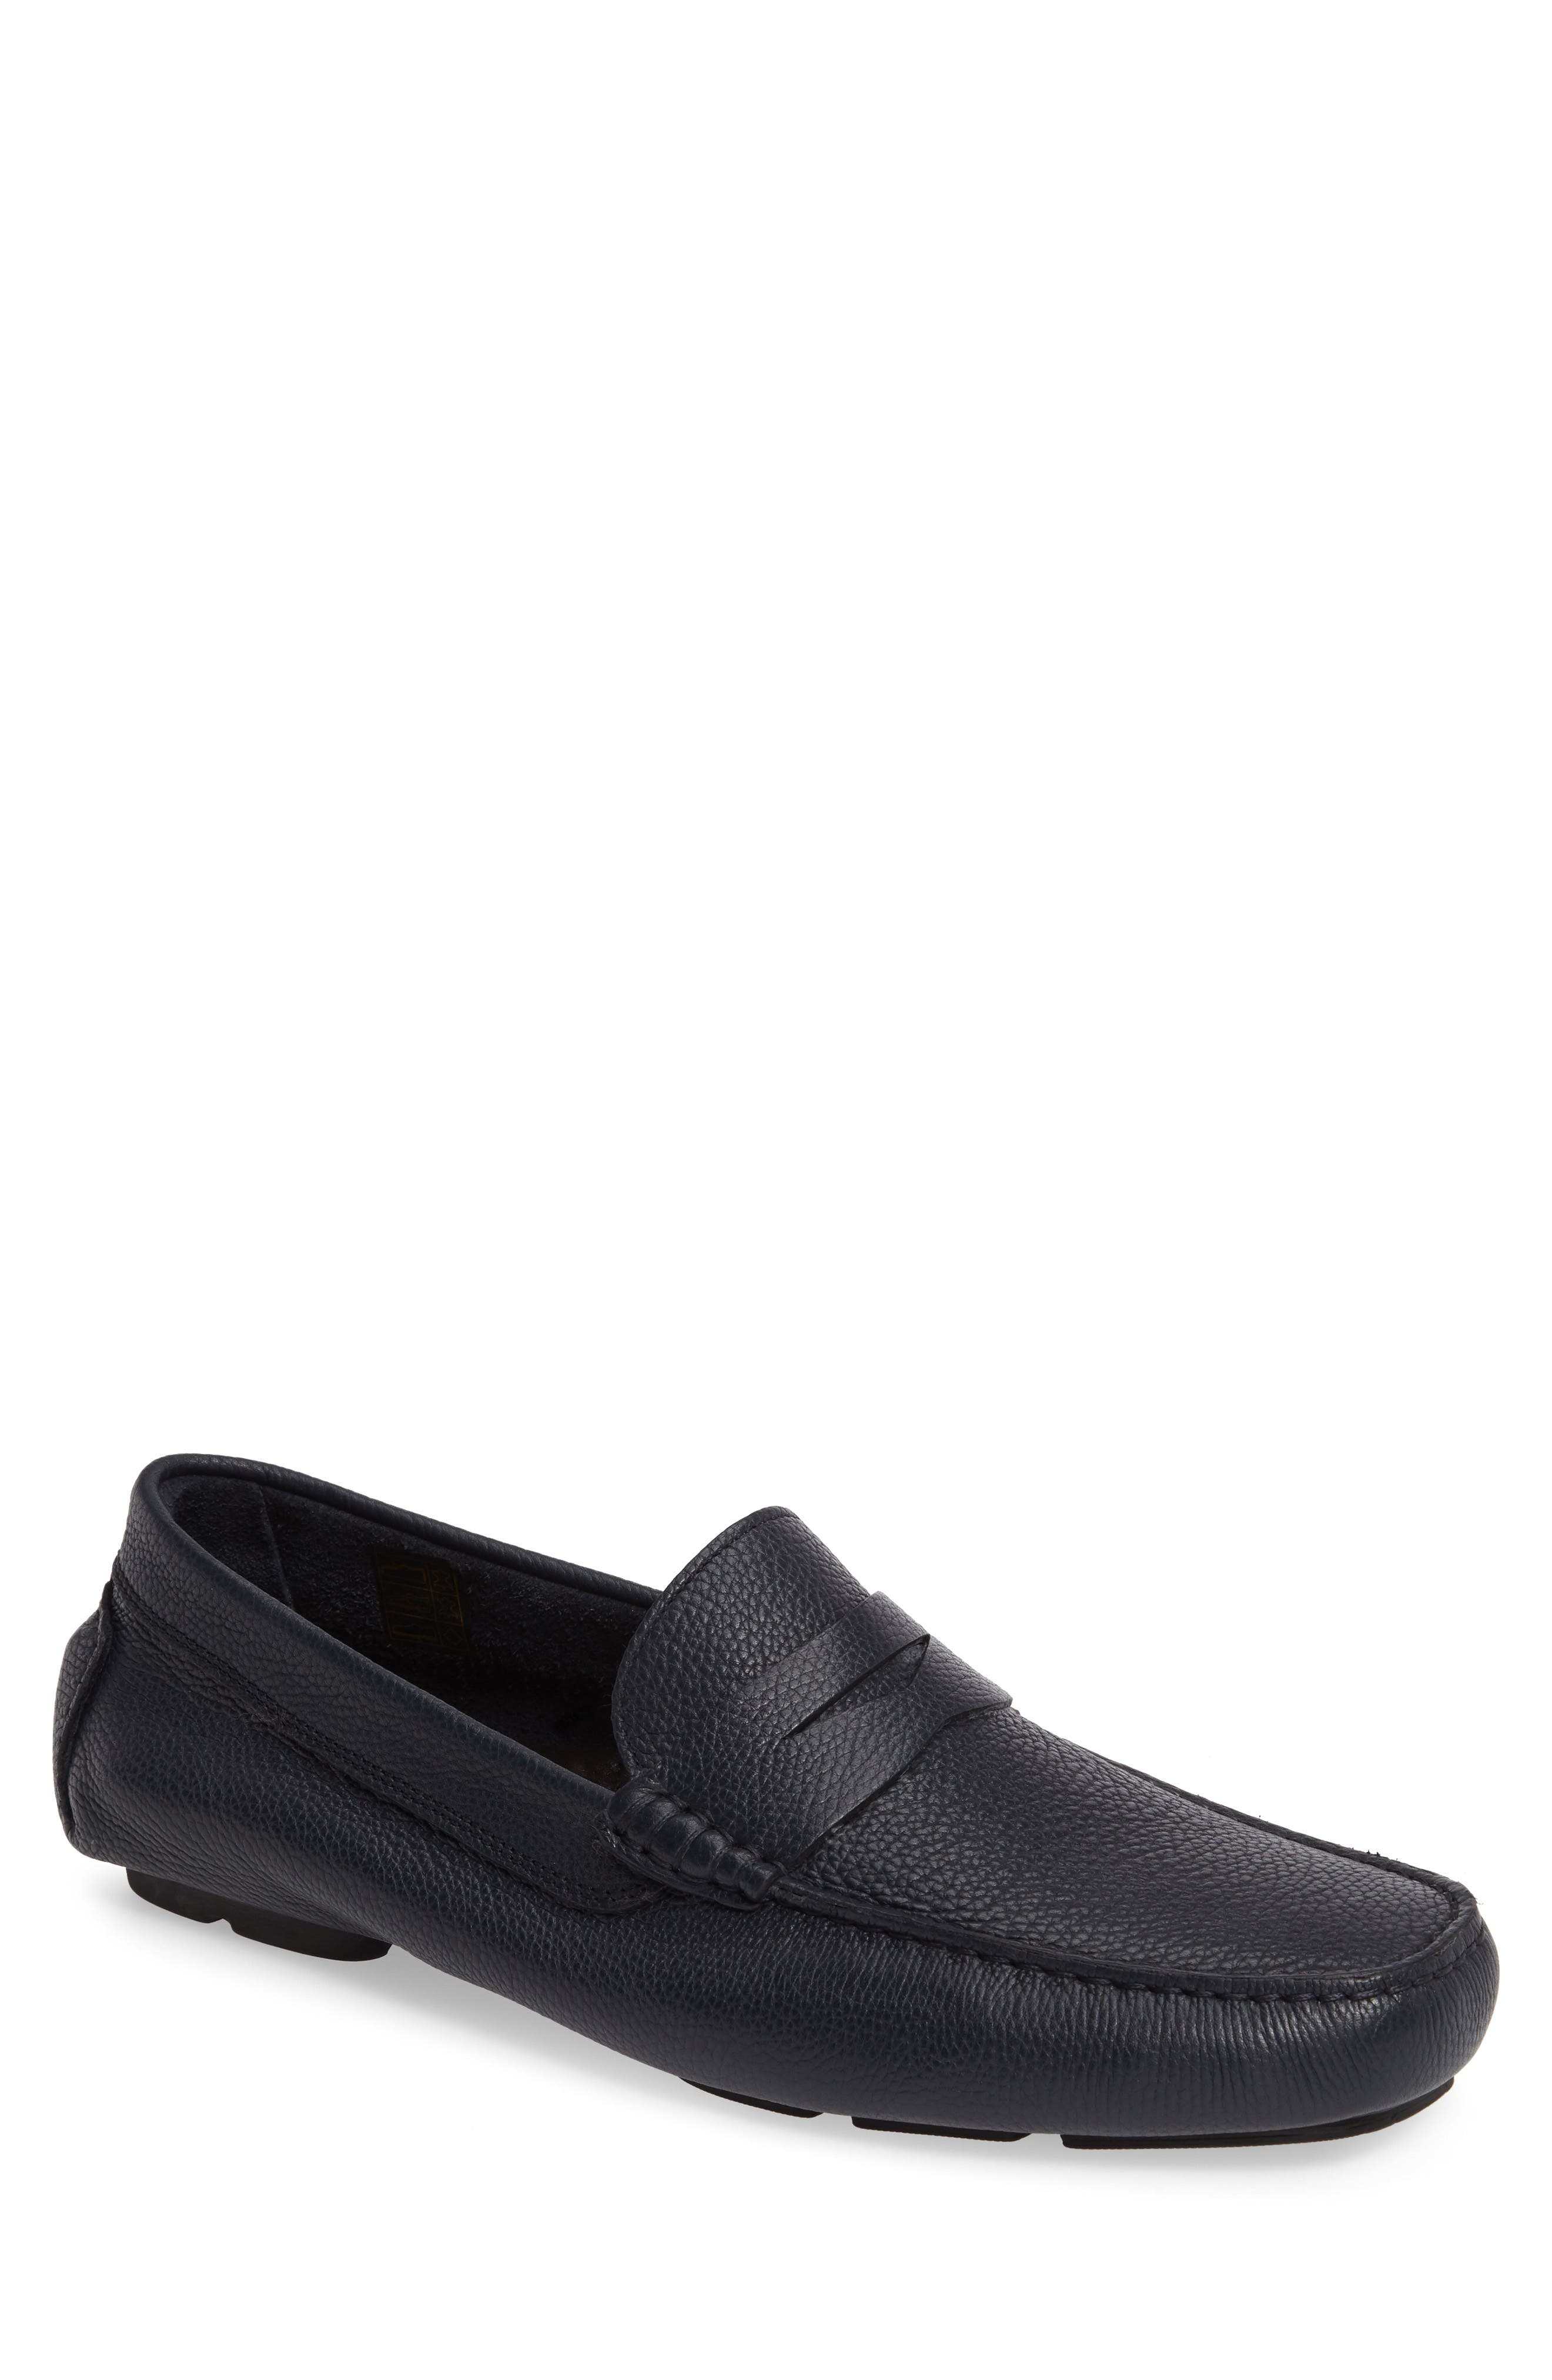 To Boot New York Ashberry Driving Moccasin (Men)